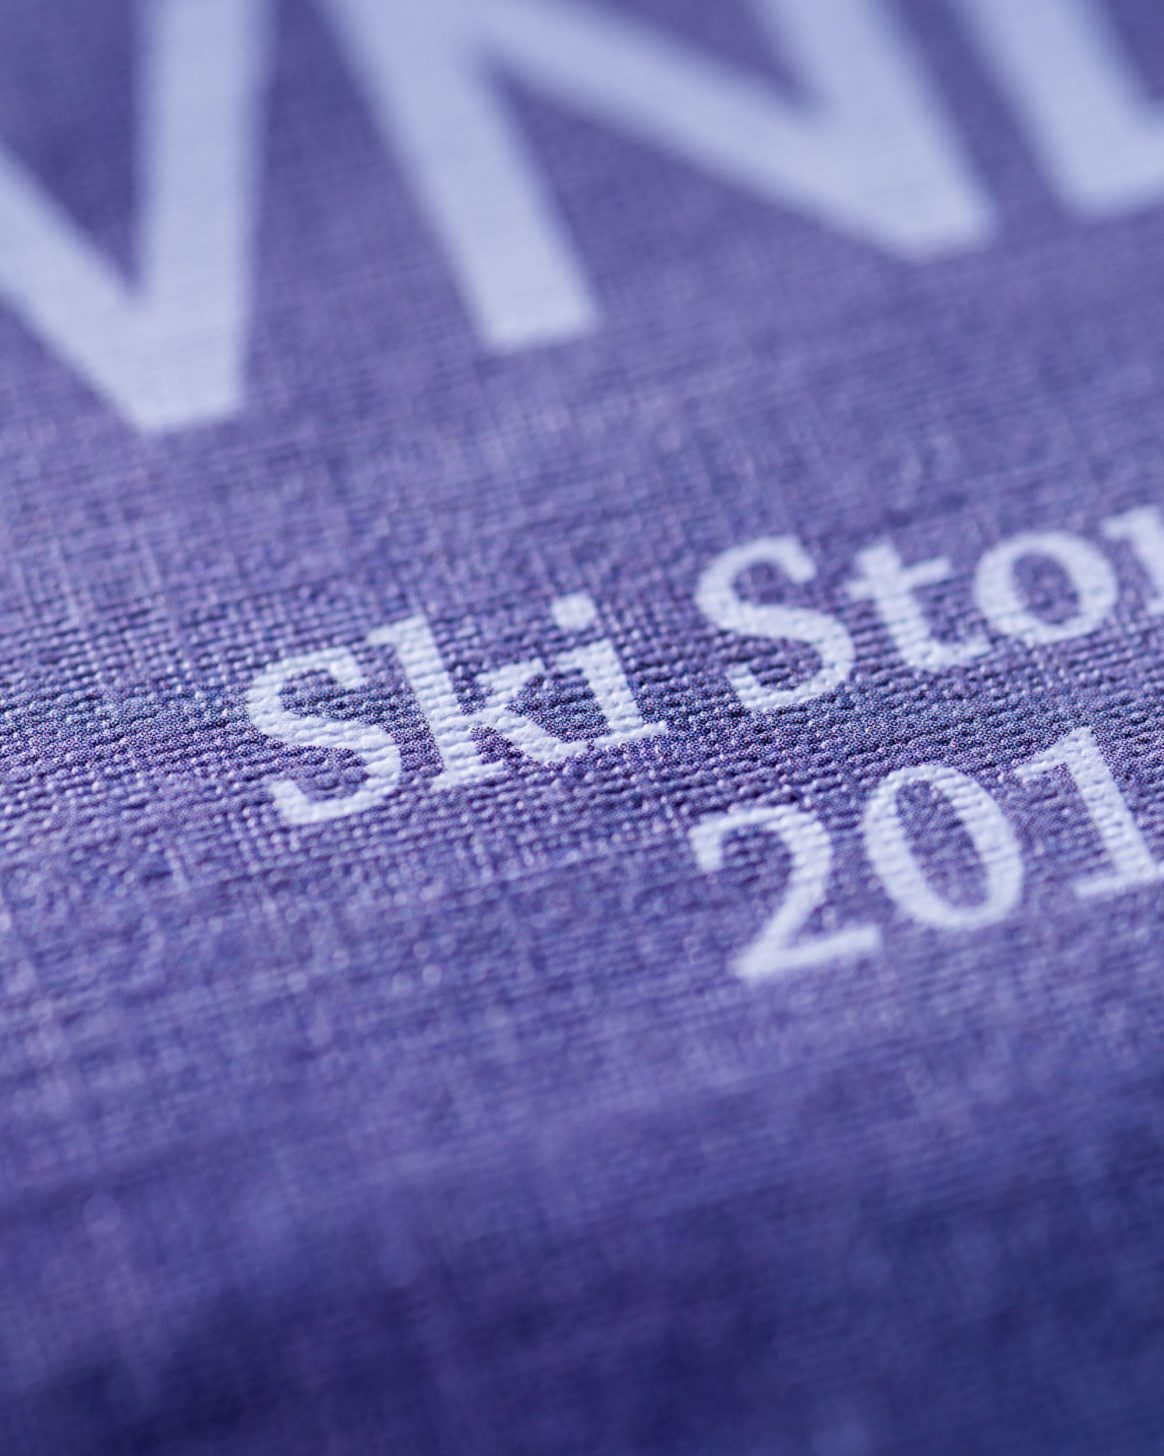 Downdays_SkiStories2019_BookPhotos_Details002_Web_KlausPolzer